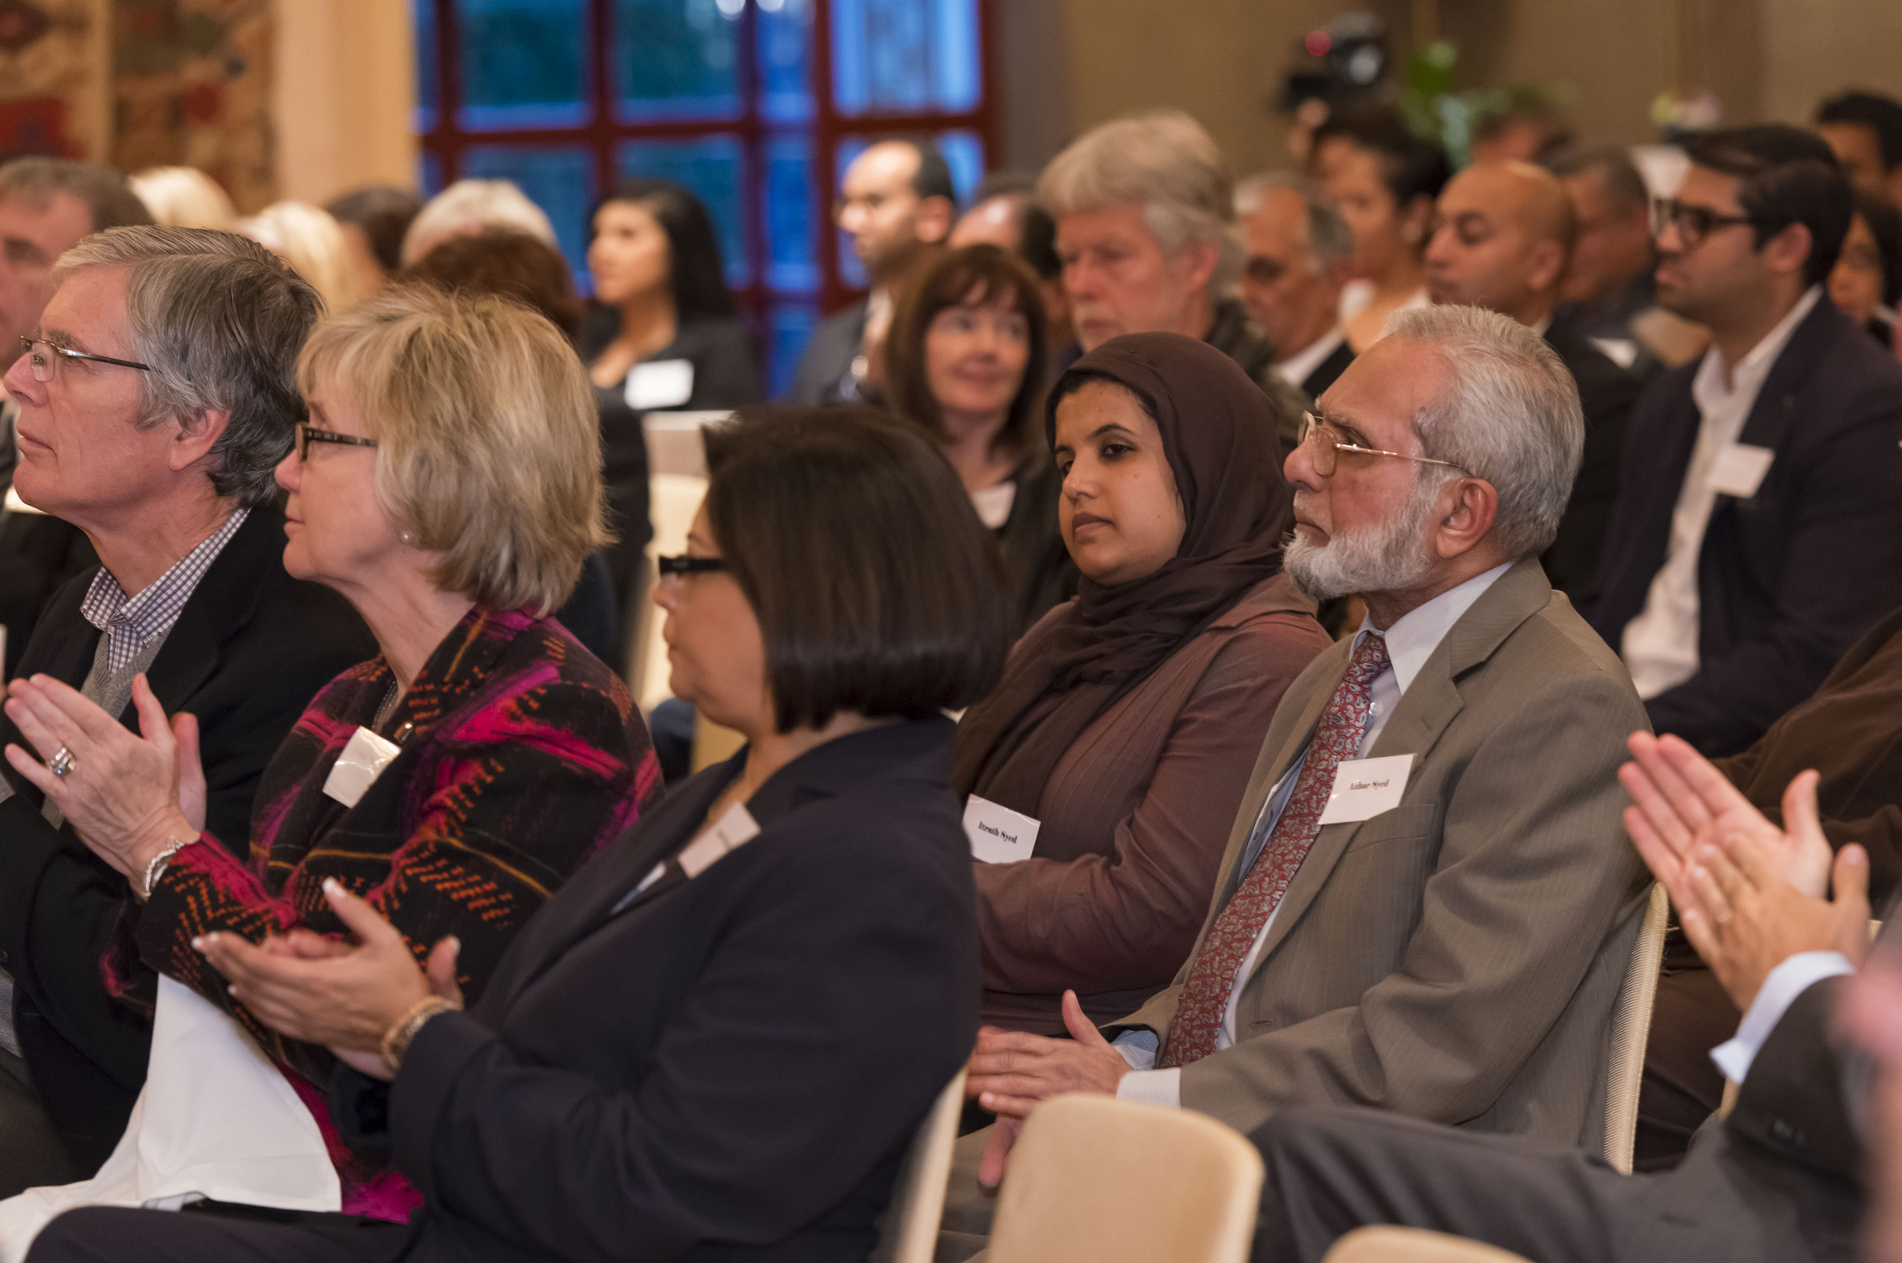 The audience listens attentively as John Stackhouse argues that despite its entrenchment in the national identity, Canadians should not take pluralism for granted. Photo: Azim Verjee